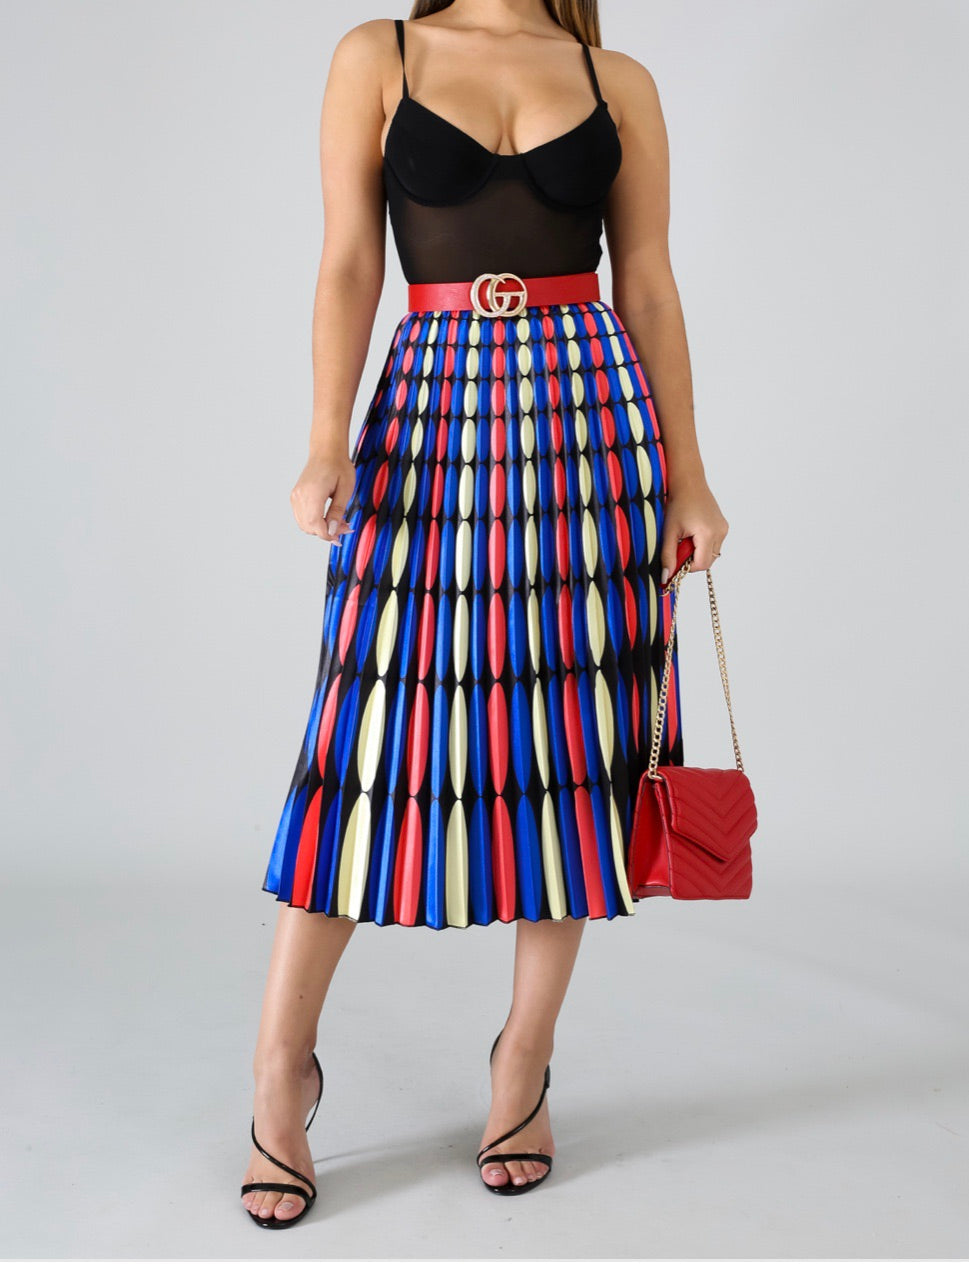 Pleatly Chic Maxi Skirt